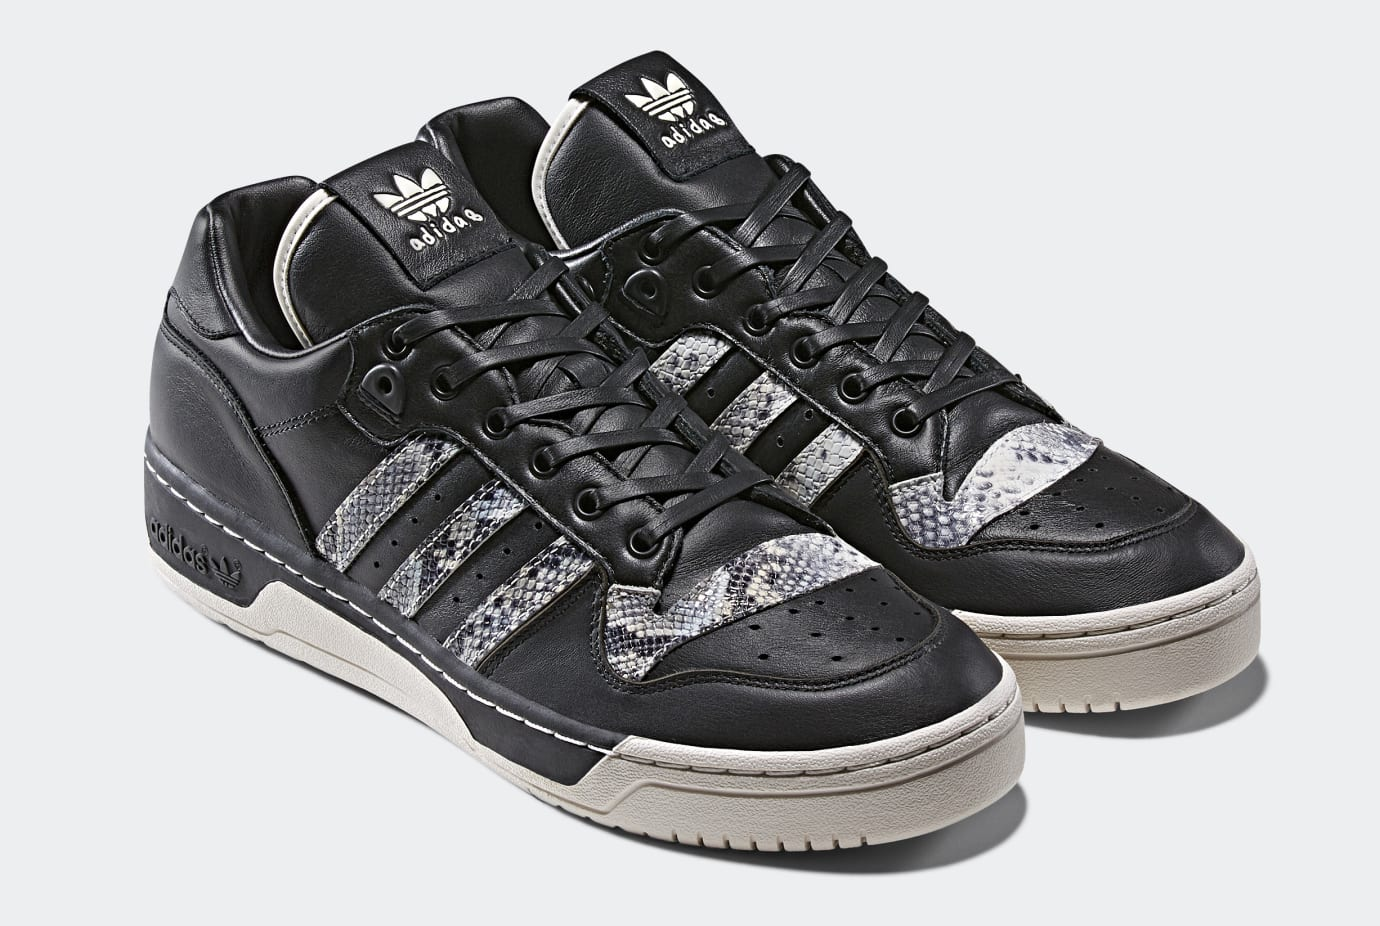 United Arrows and Sons x Adidas Rivalry Low B37112 (Pair)